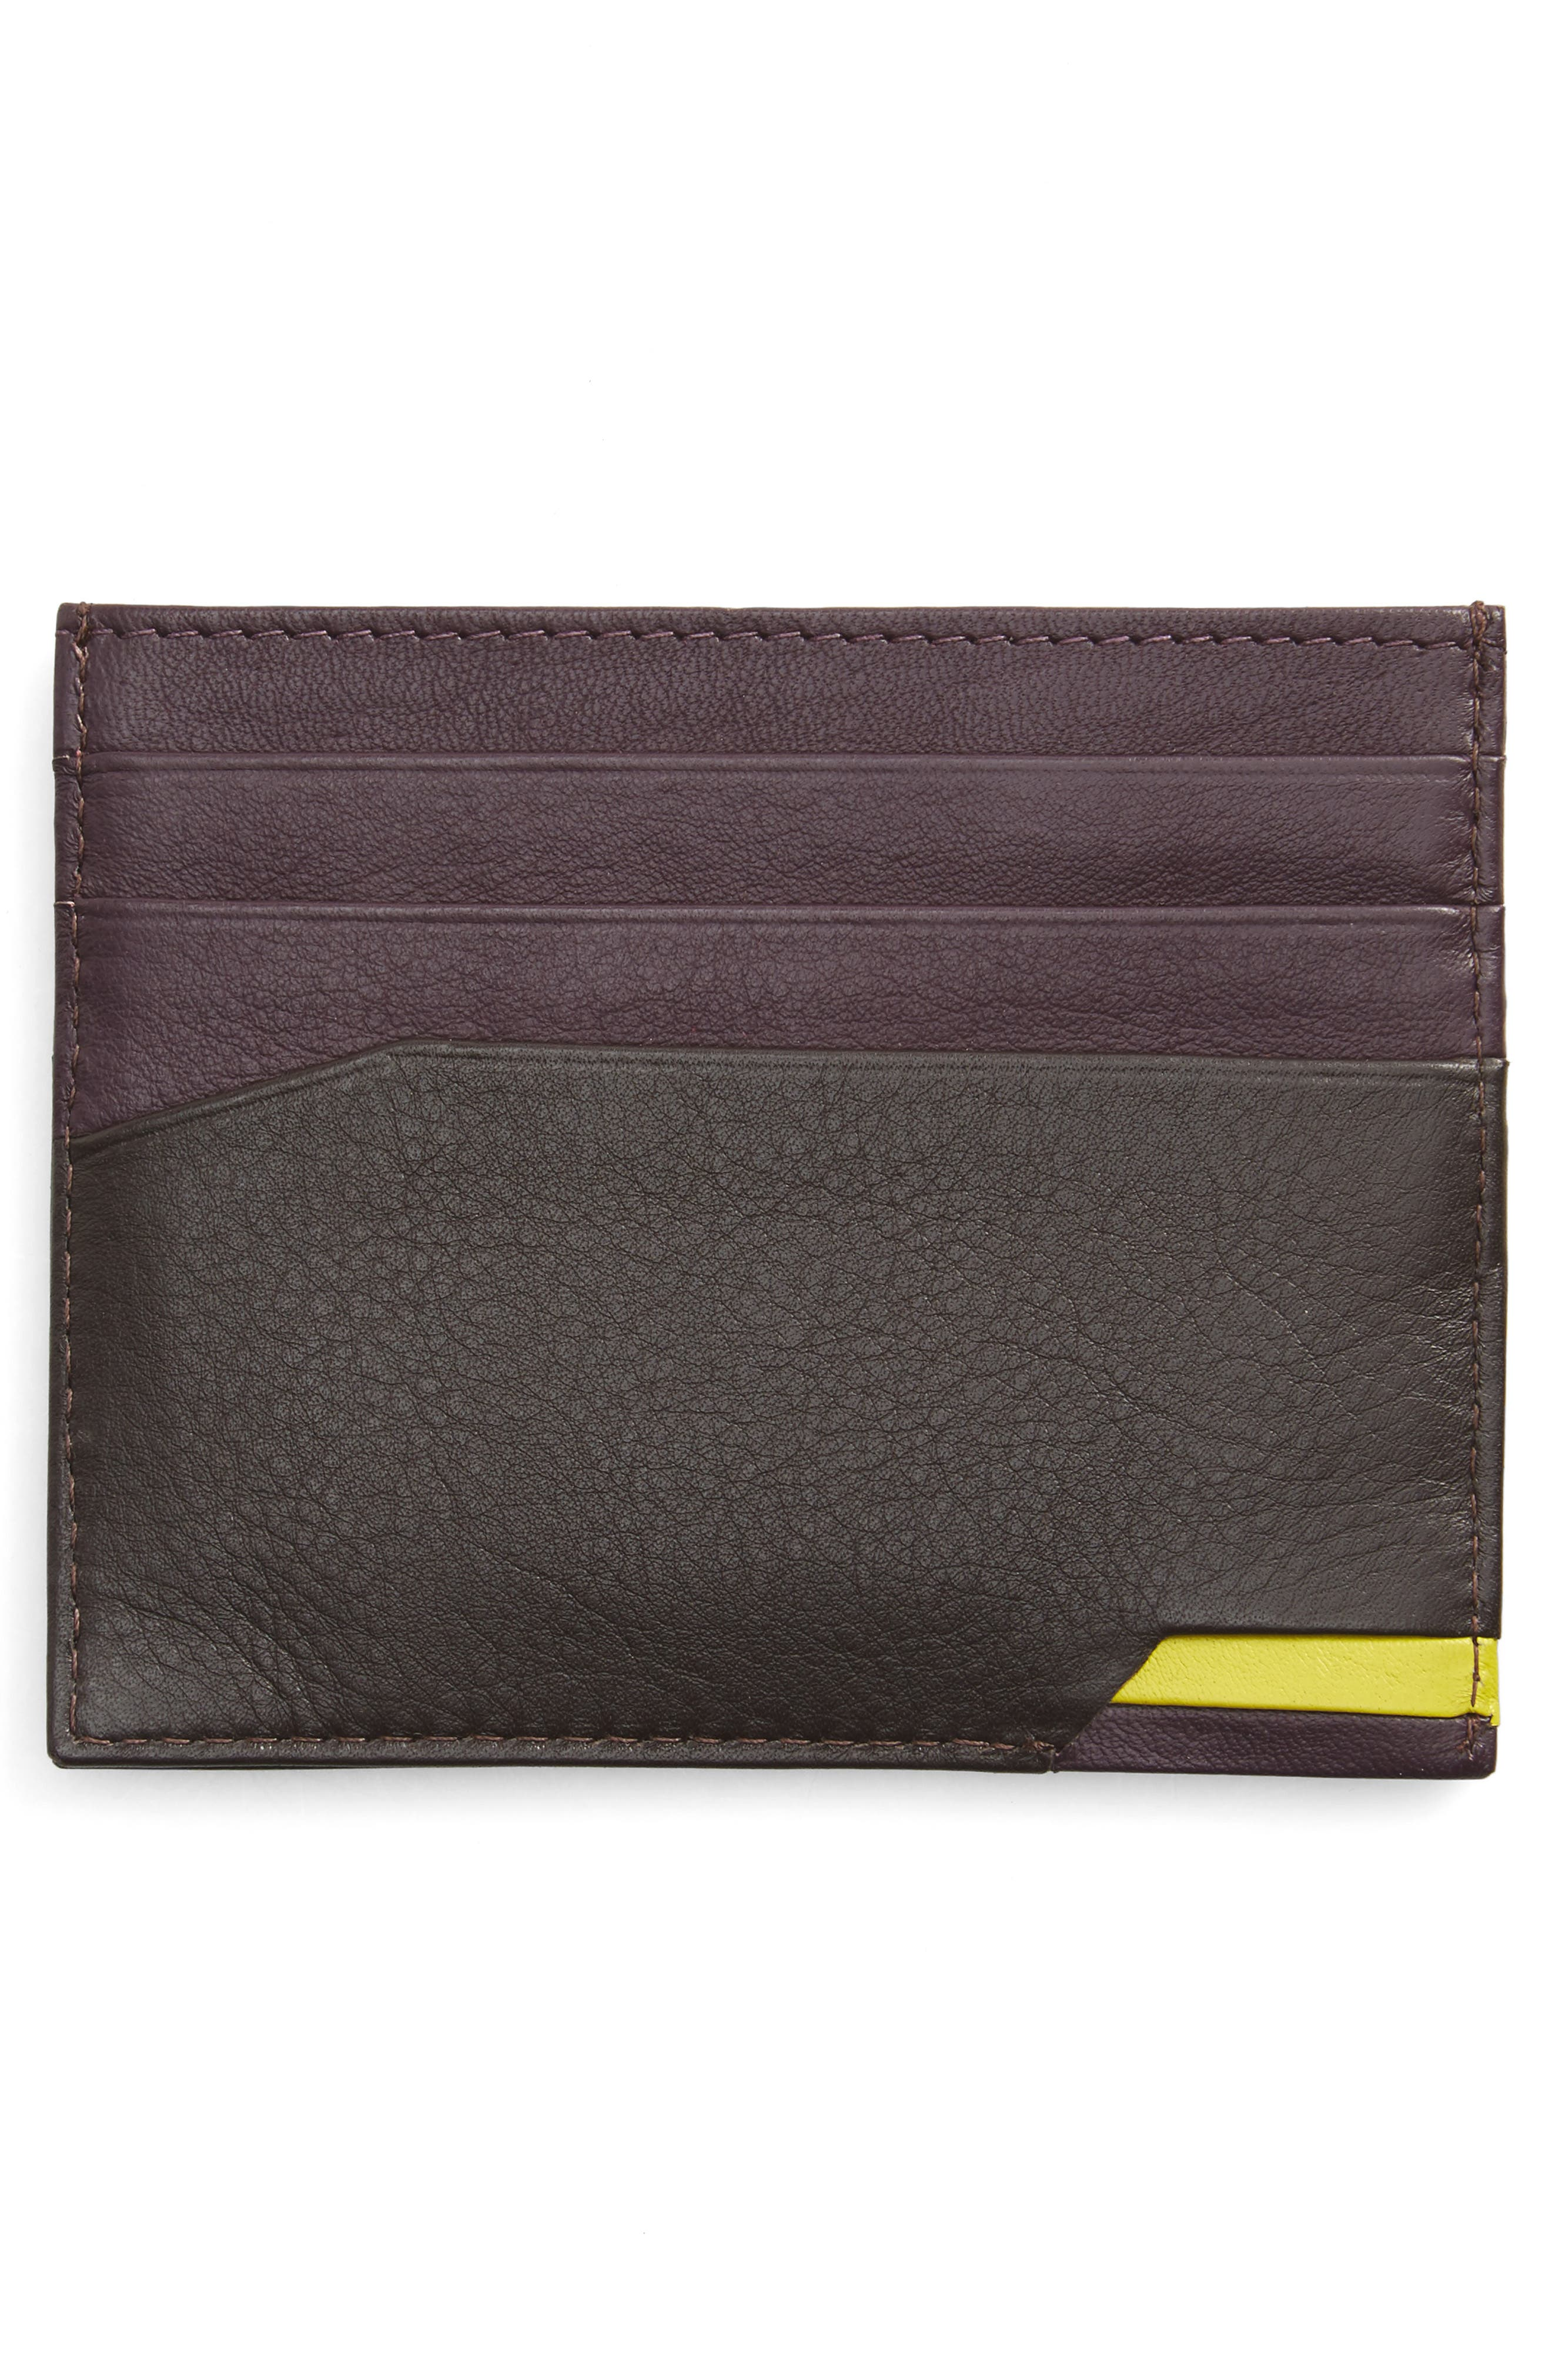 Corcard Card Case,                             Alternate thumbnail 2, color,                             211